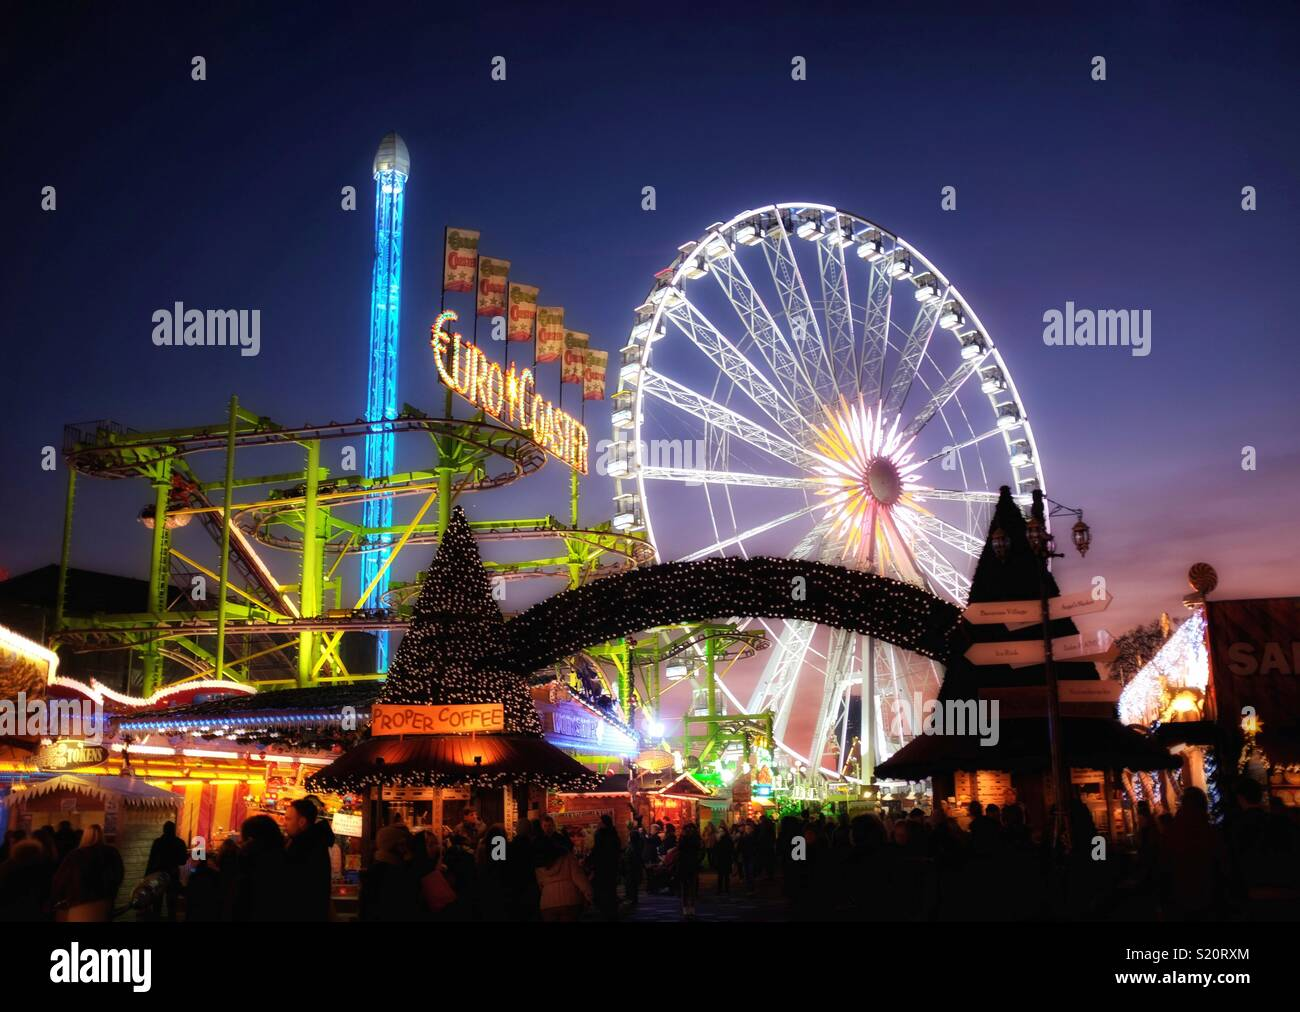 Fun à la foire - Winter Wonderland, Londres Photo Stock